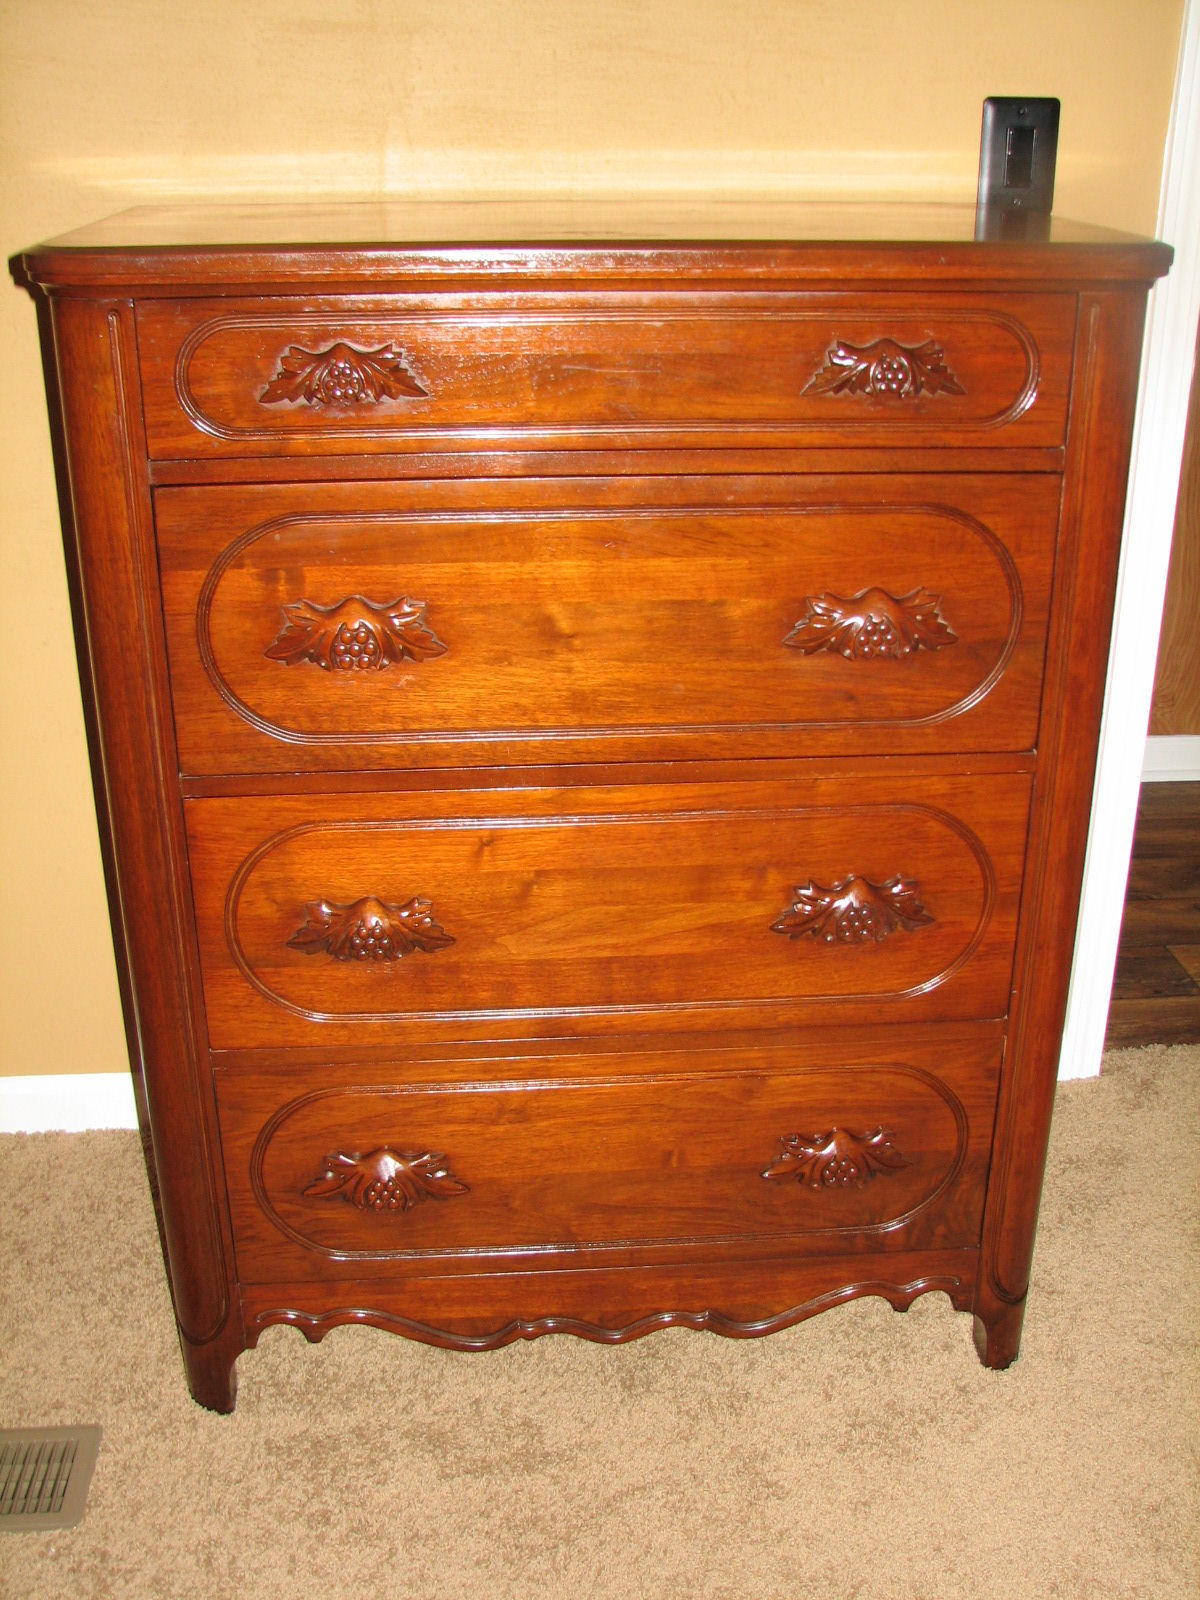 Lillian Russell Black Walnut Bedroom set For Sale | Antiques.com |  Classifieds - Lillian Russell Black Walnut Bedroom Set For Sale Antiques.com